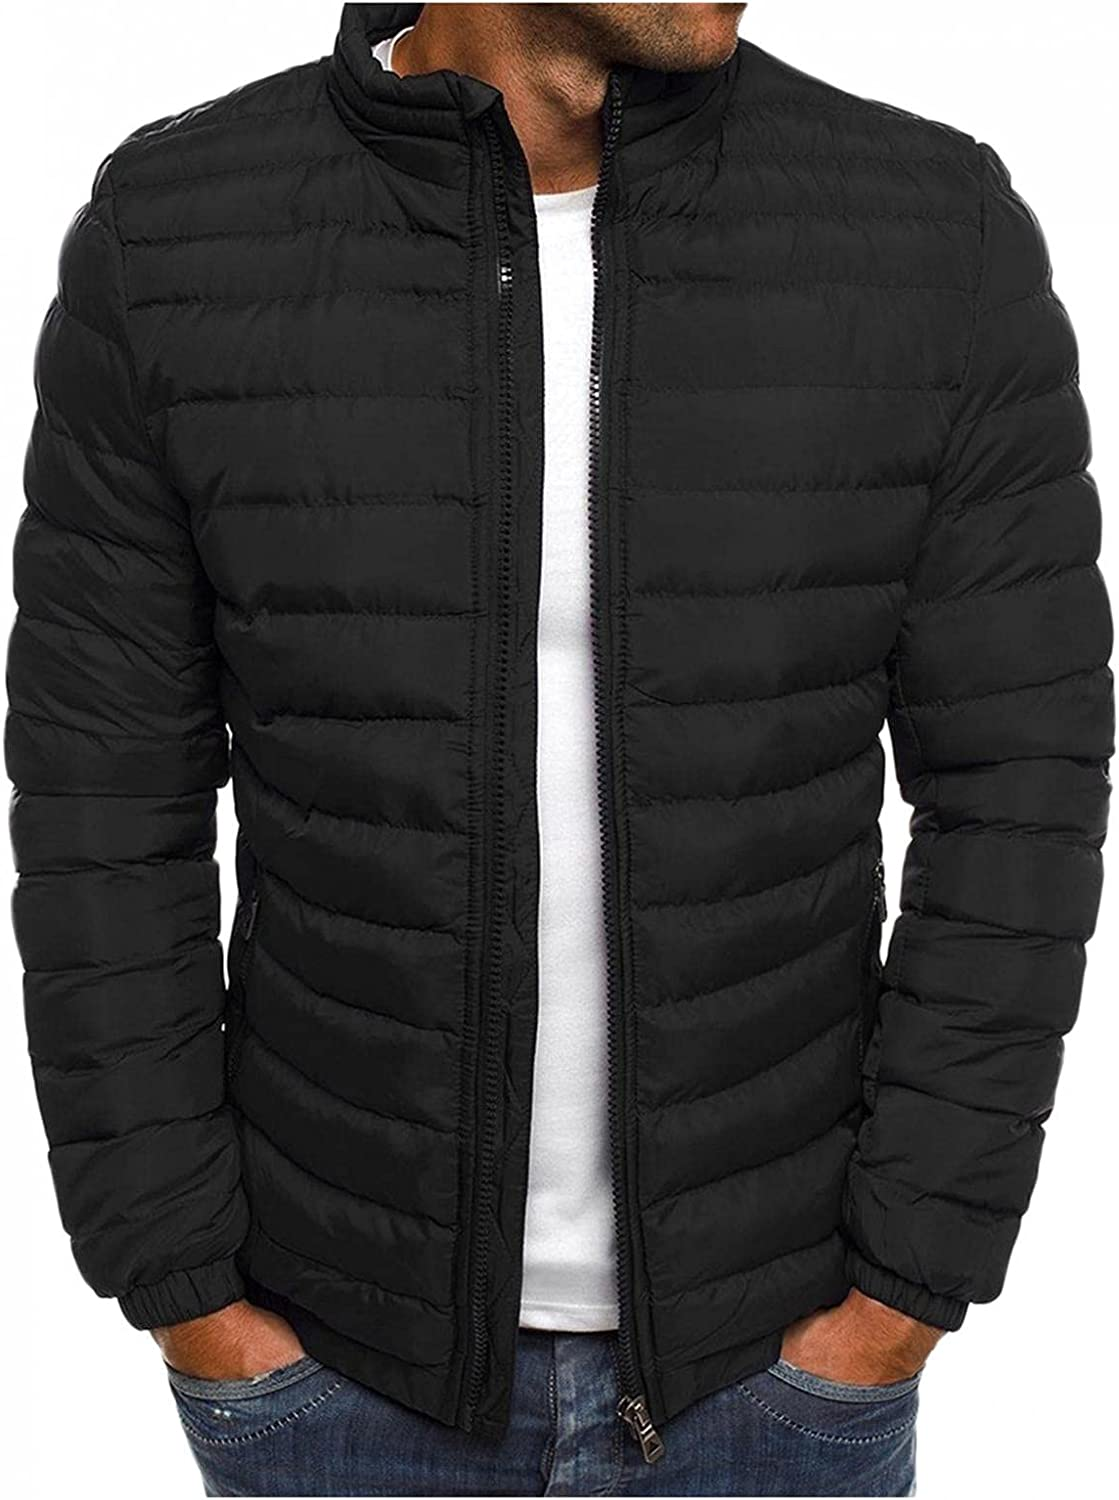 LEIYAN Mens Lightweight Packable Down Jacket Zip Up Long Sleeve Stand Collar Casual Cotton Coat Outerwear for Travel